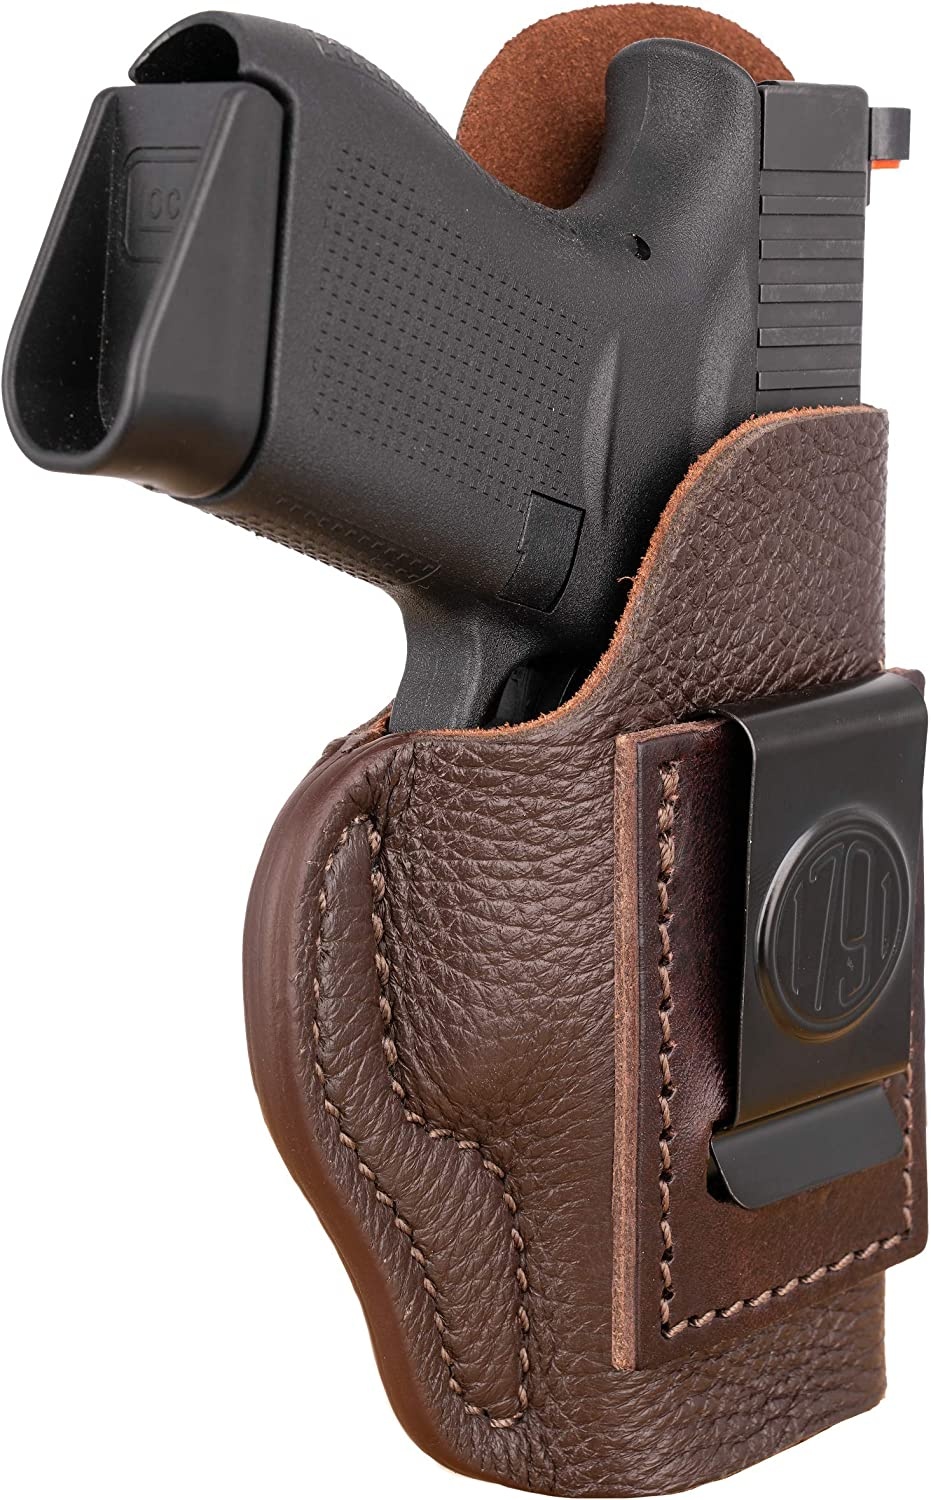 Large special price 1791 GUNLEATHER Premium Leather quality assurance Glock 43 H Right Holster CCW IWB